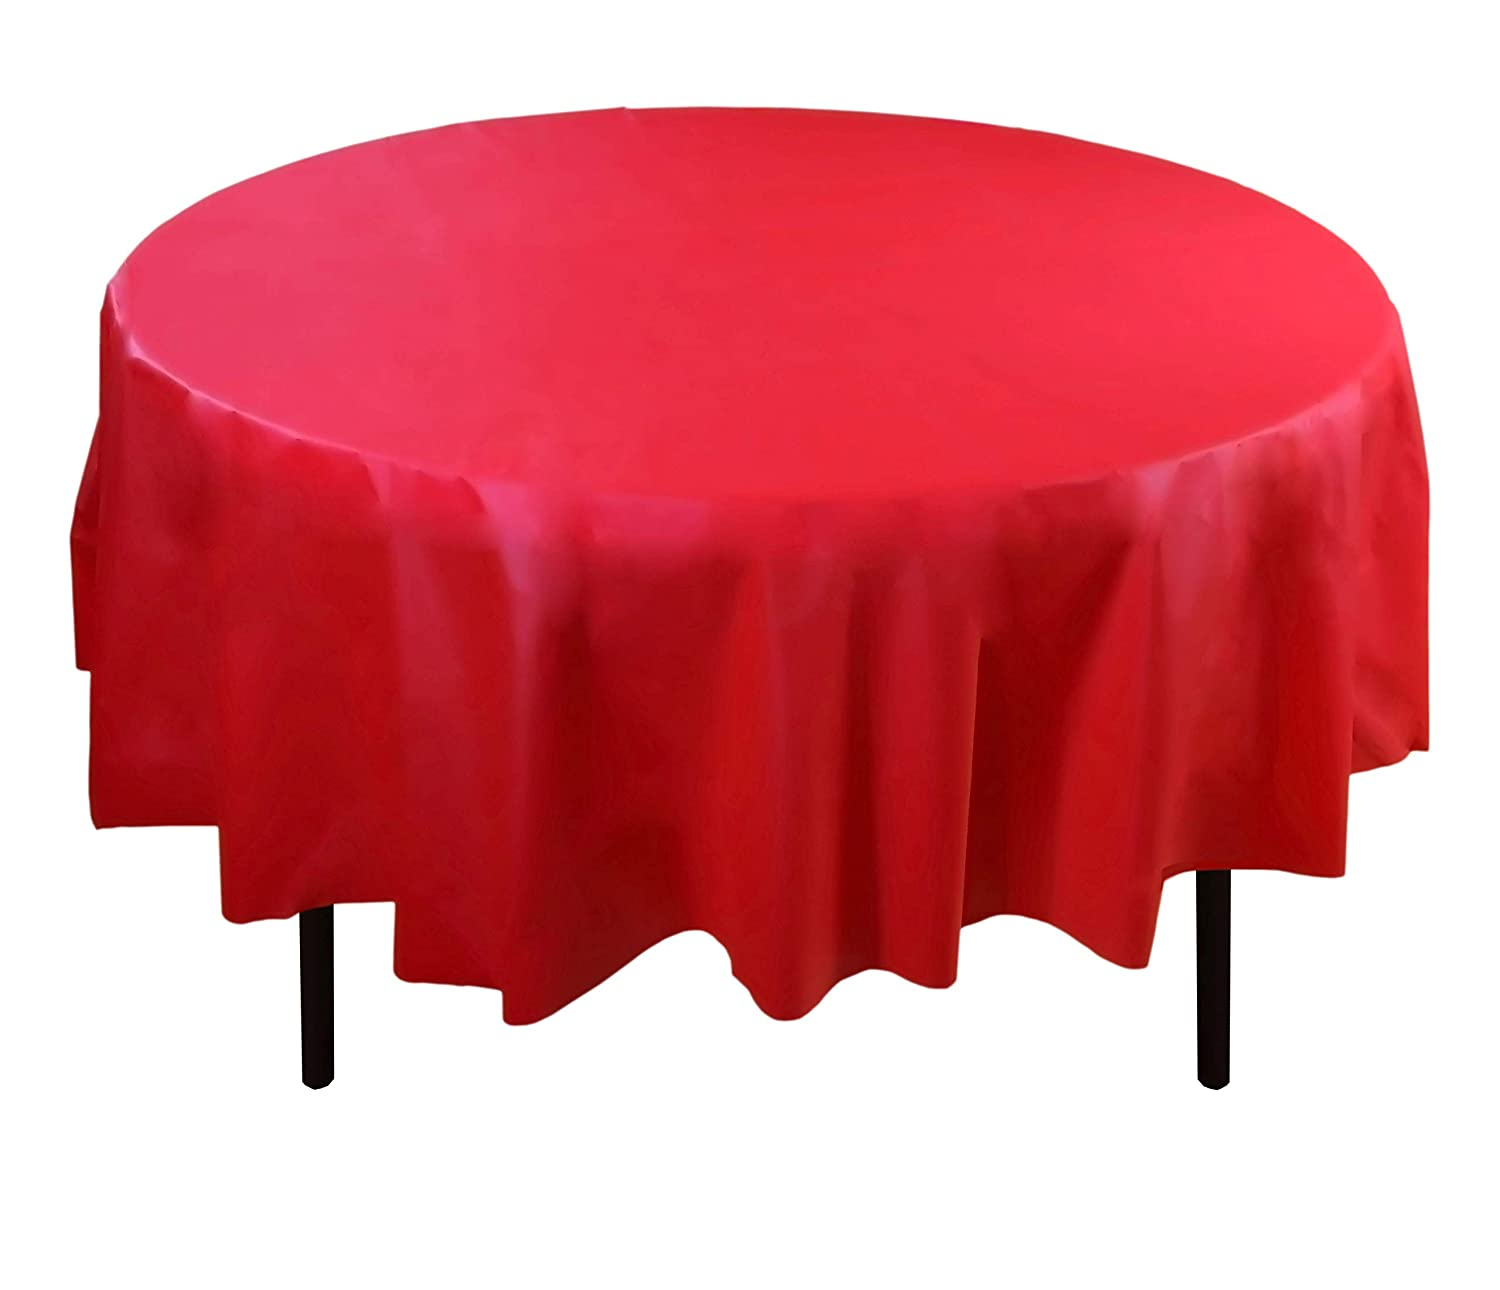 Exquisite 12-Pack Premium Plastic Tablecloth 84in. Round Table Cover - Red